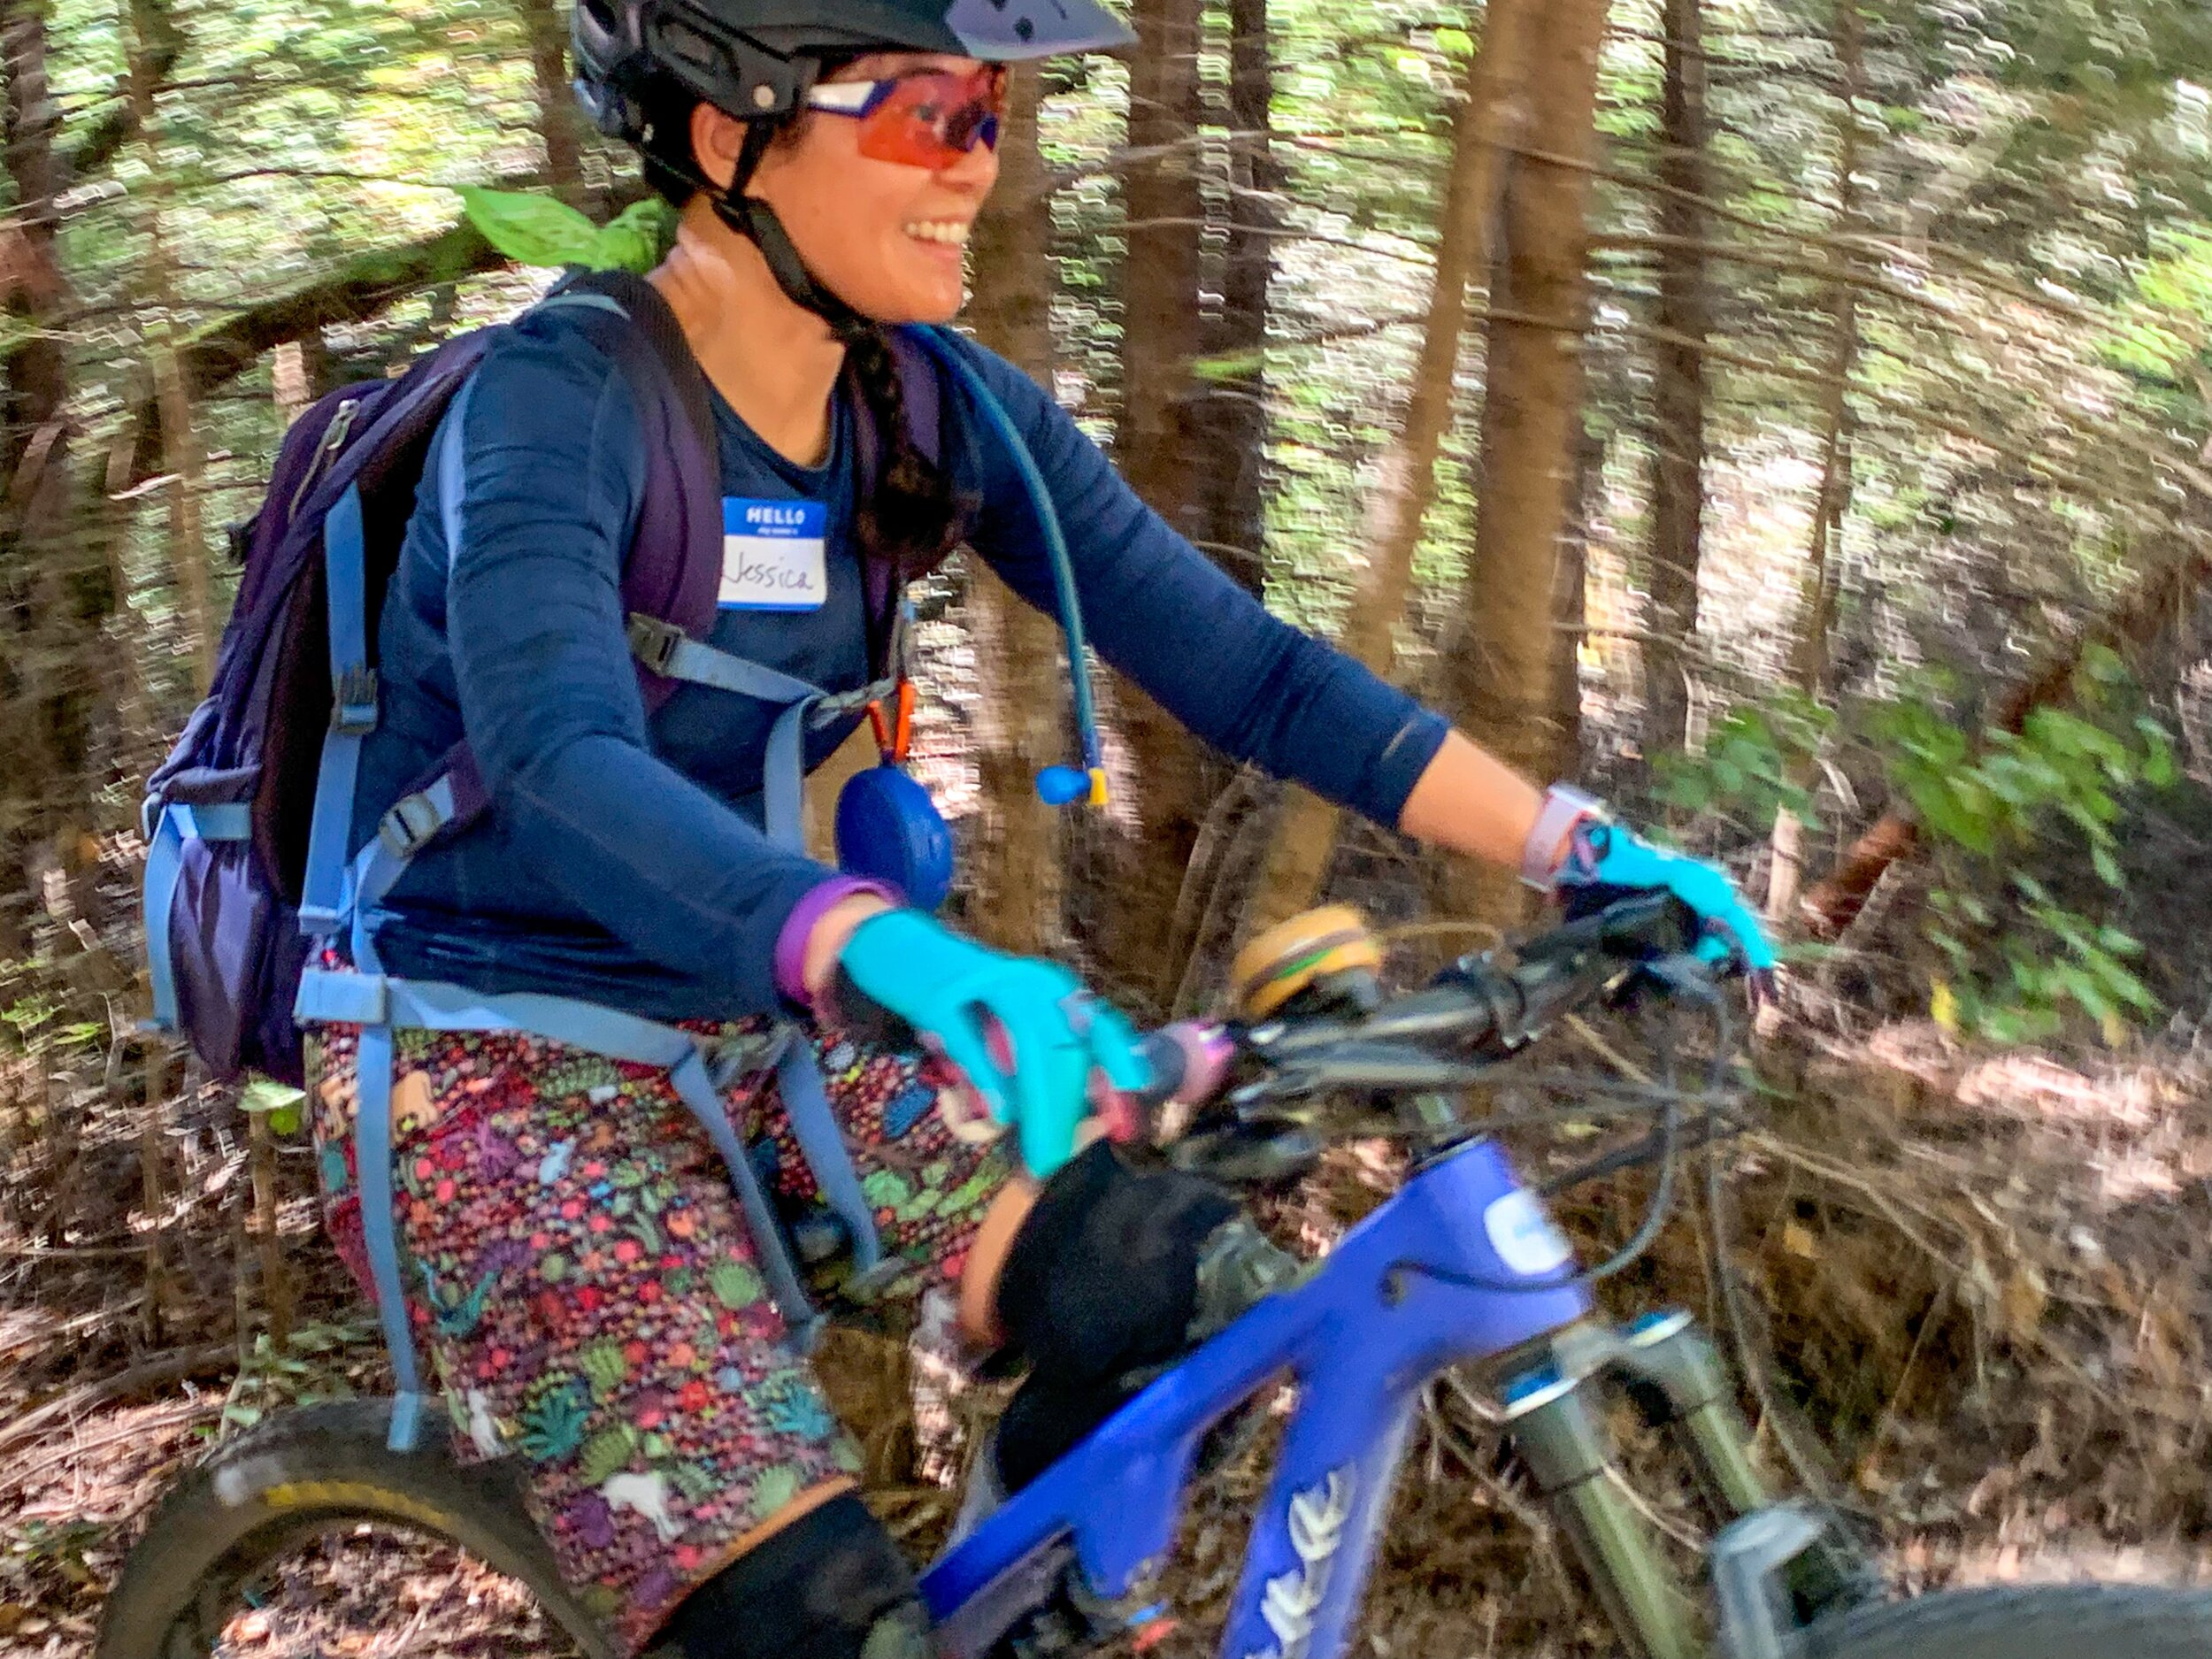 Our lovely guide Jessica Tseng took Intermediate riders on a cool woodland tour. See all the great photos:  https://www.girlsrock-mtb.com/september-8-2019-spokesman